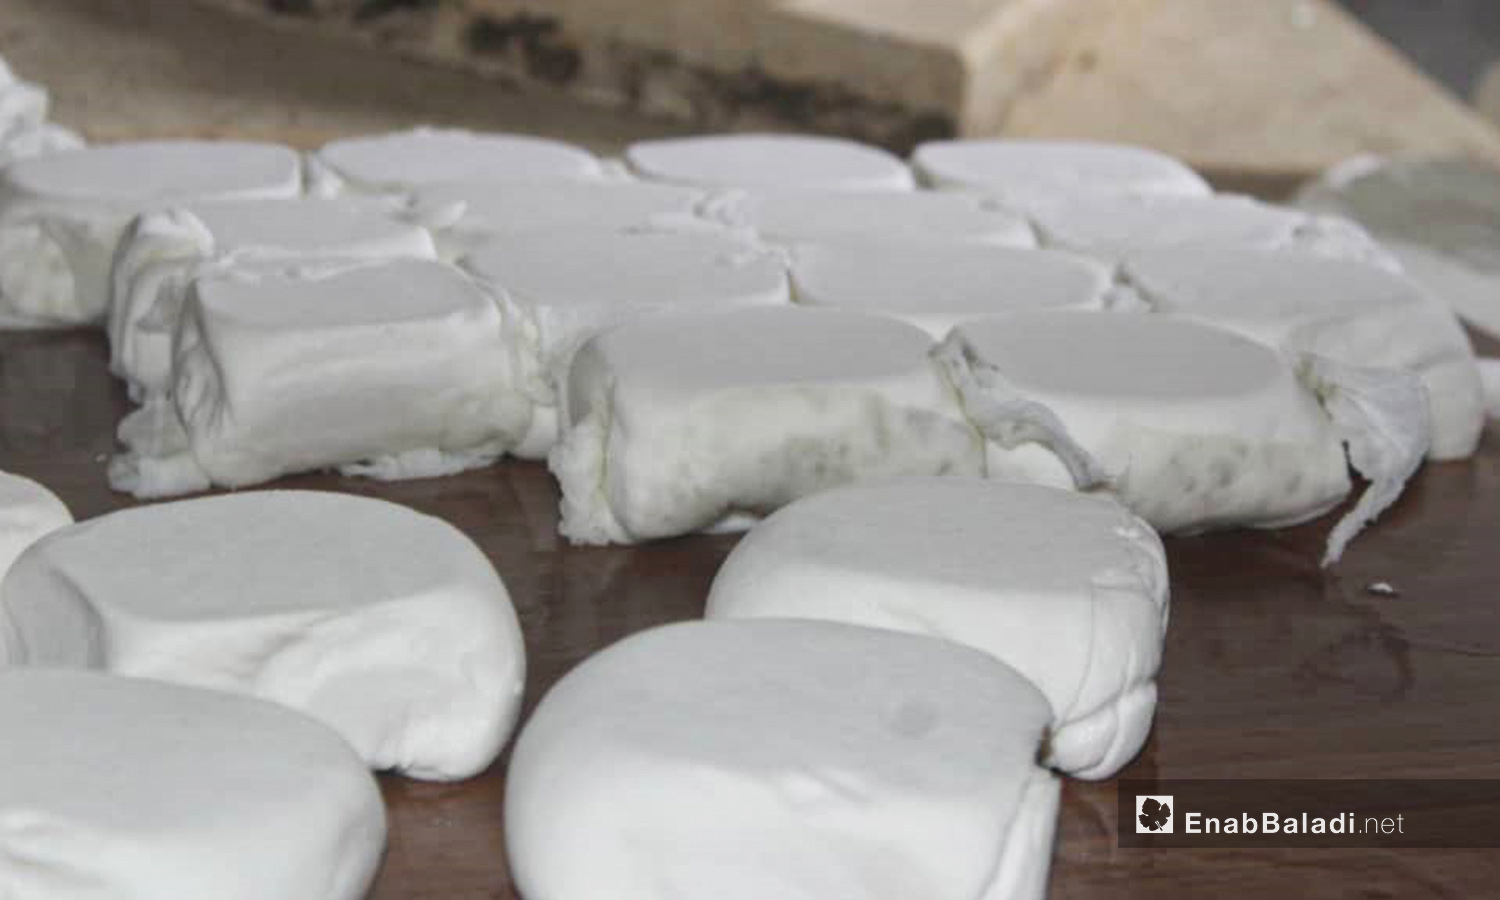 The stage of removing cheese from the plunger in the cheese-making process in al-Dana city of northern Idlib countryside – 04 June 2020 (Enab Baladi / Shadia al-Taataa)